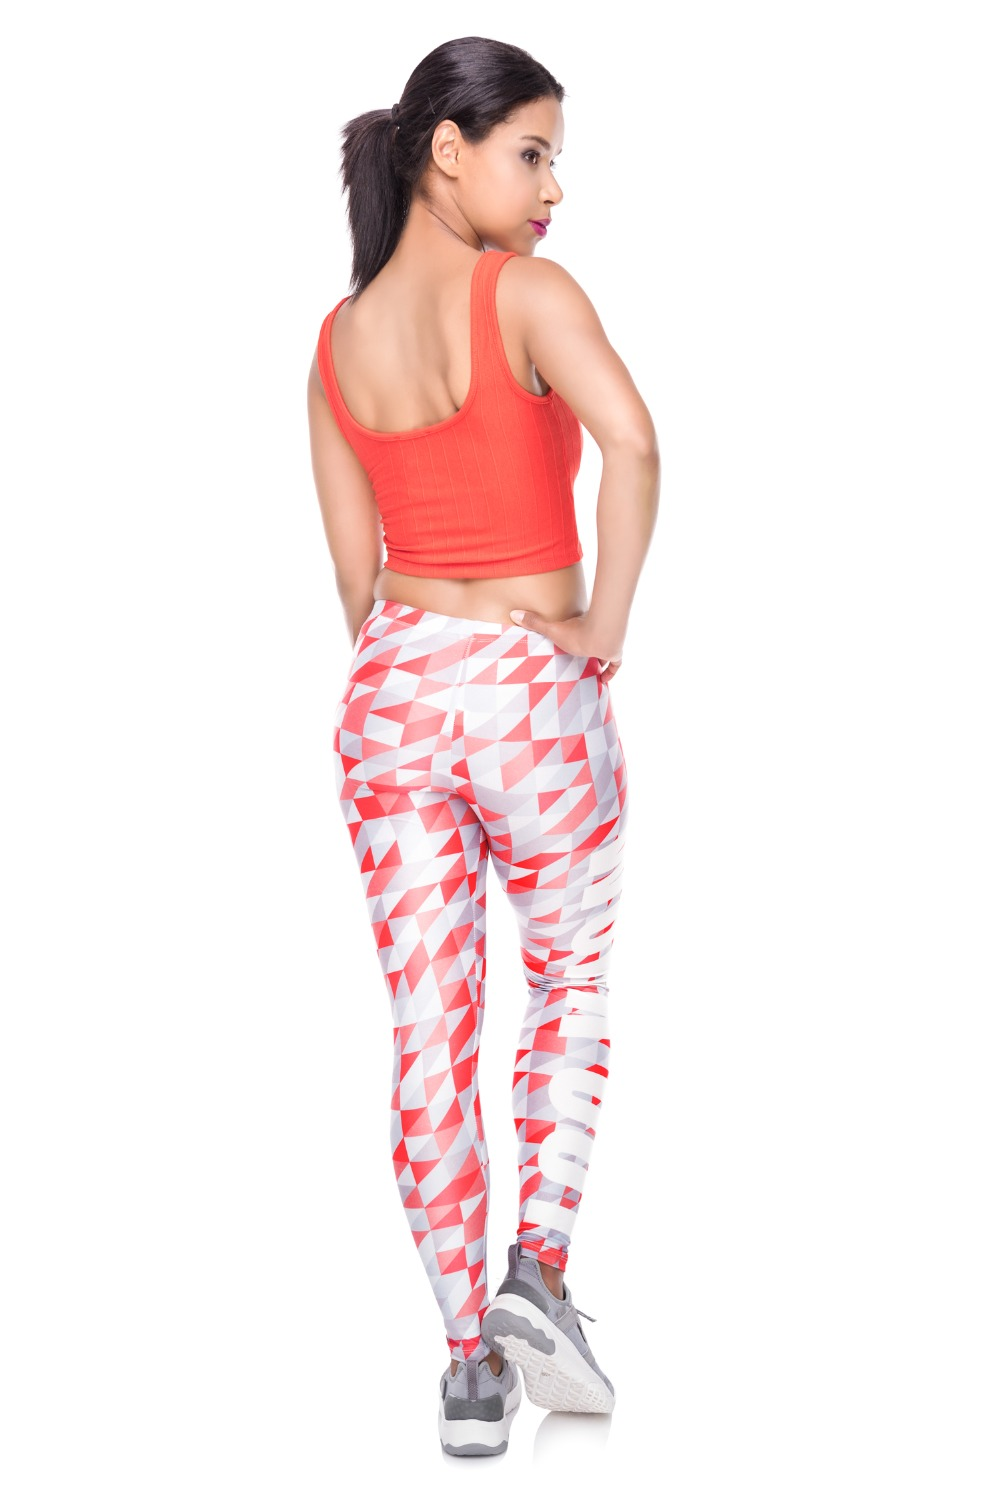 34259 WORK OUT triangle gray red (3)